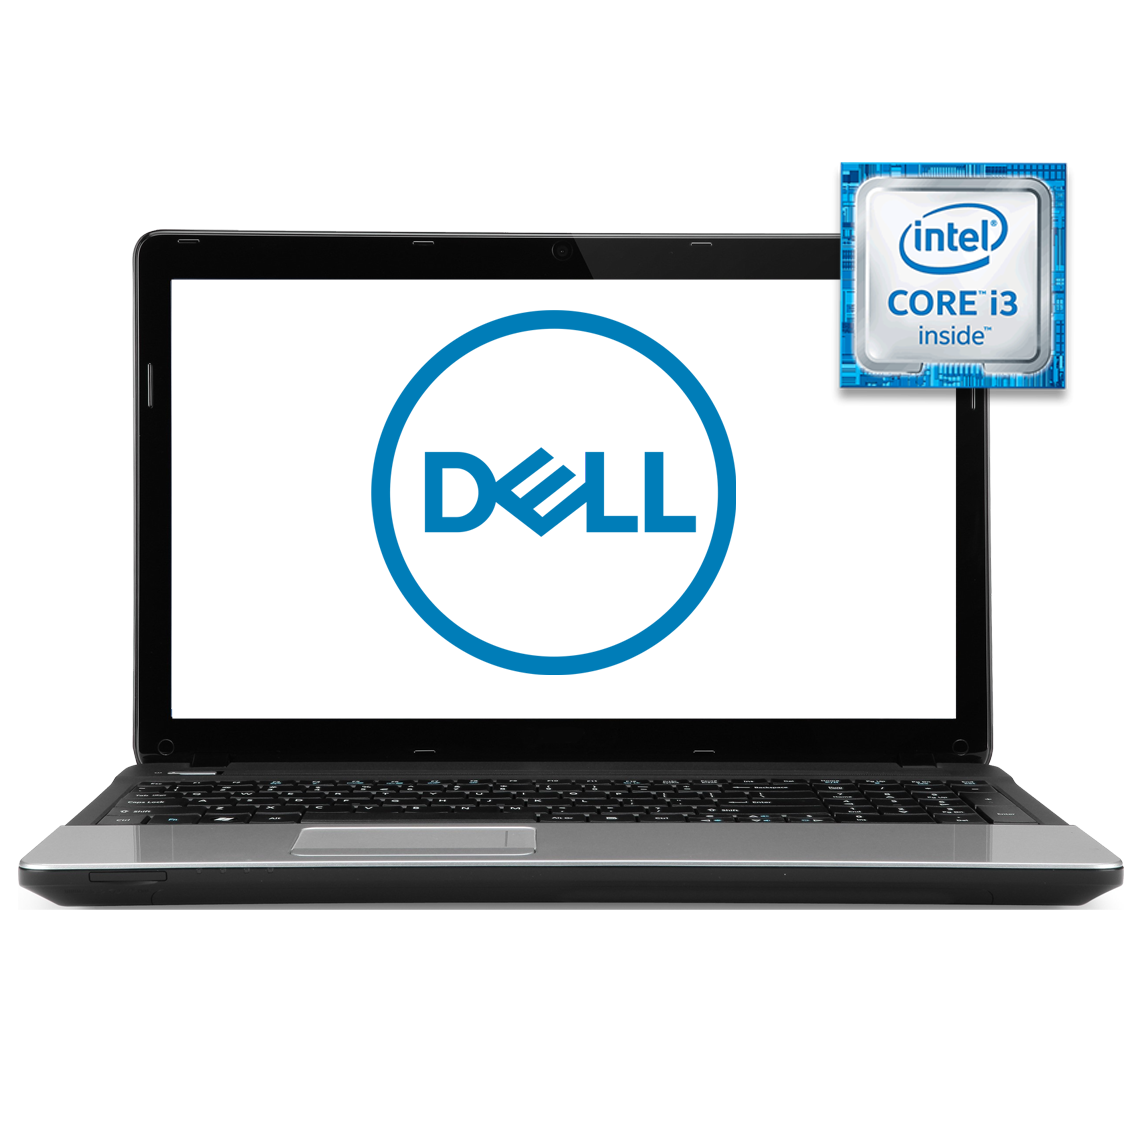 Dell - 14 inch Core i3 2nd Gen